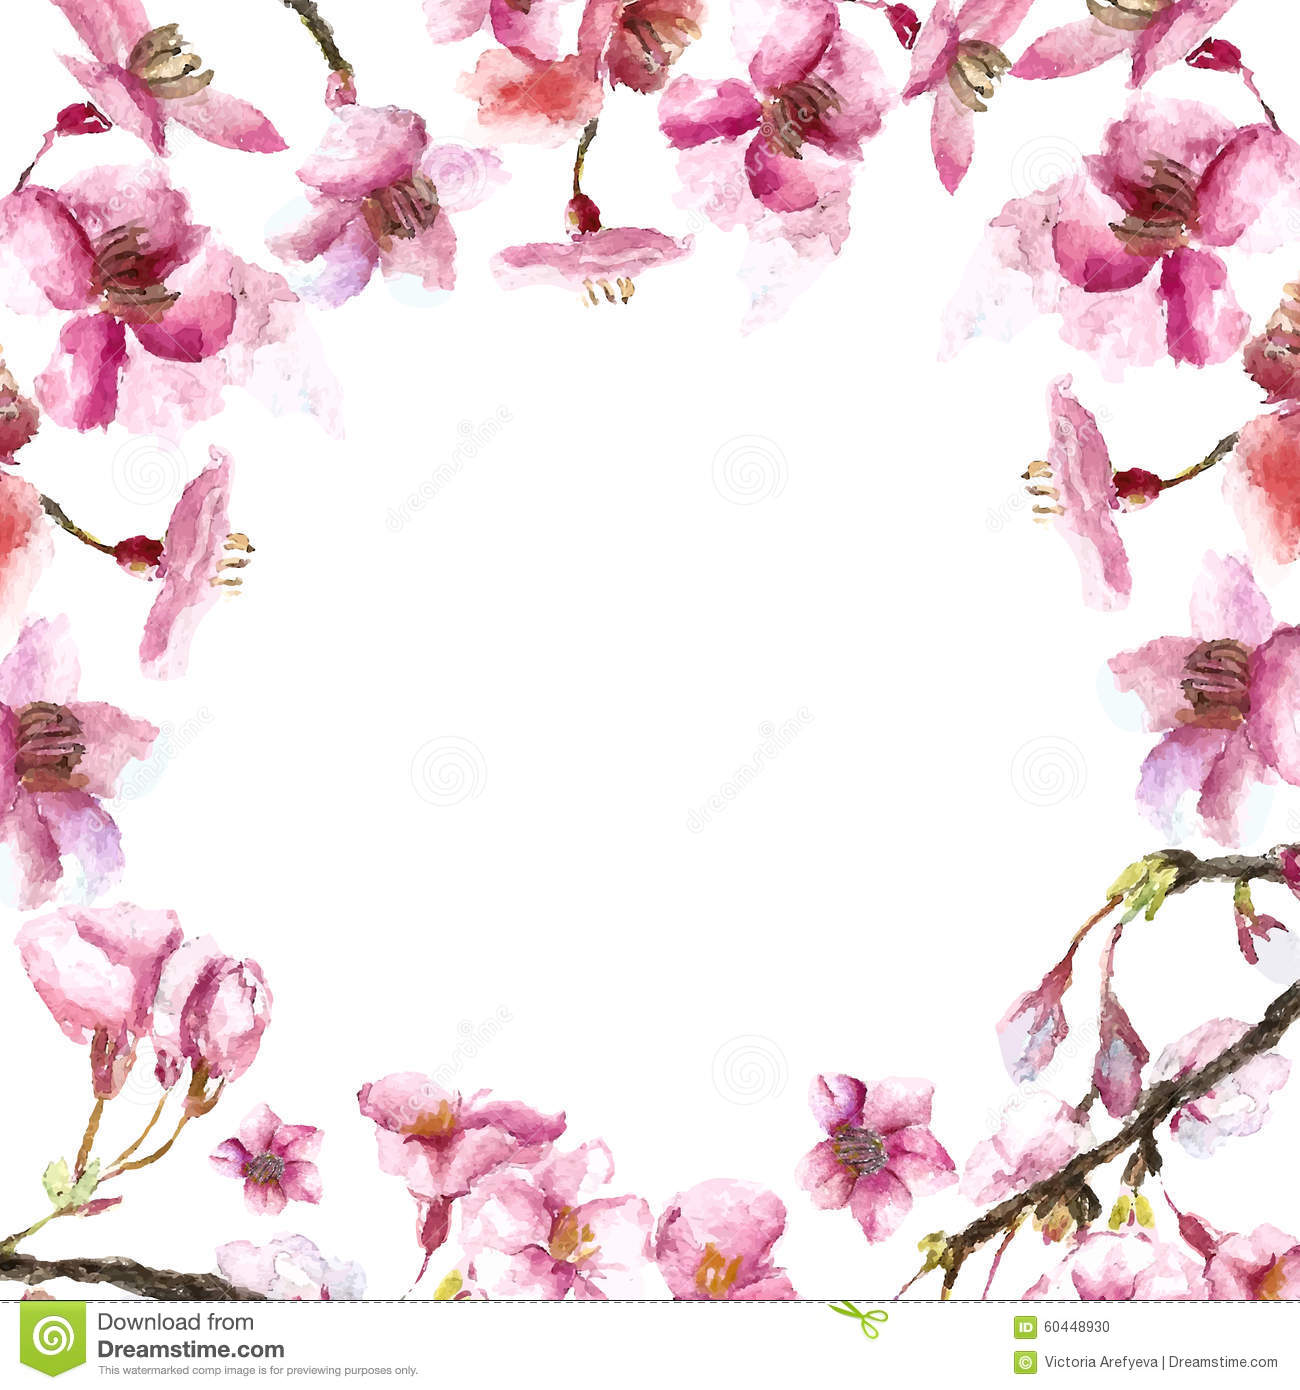 Asian flower and petal 2 6